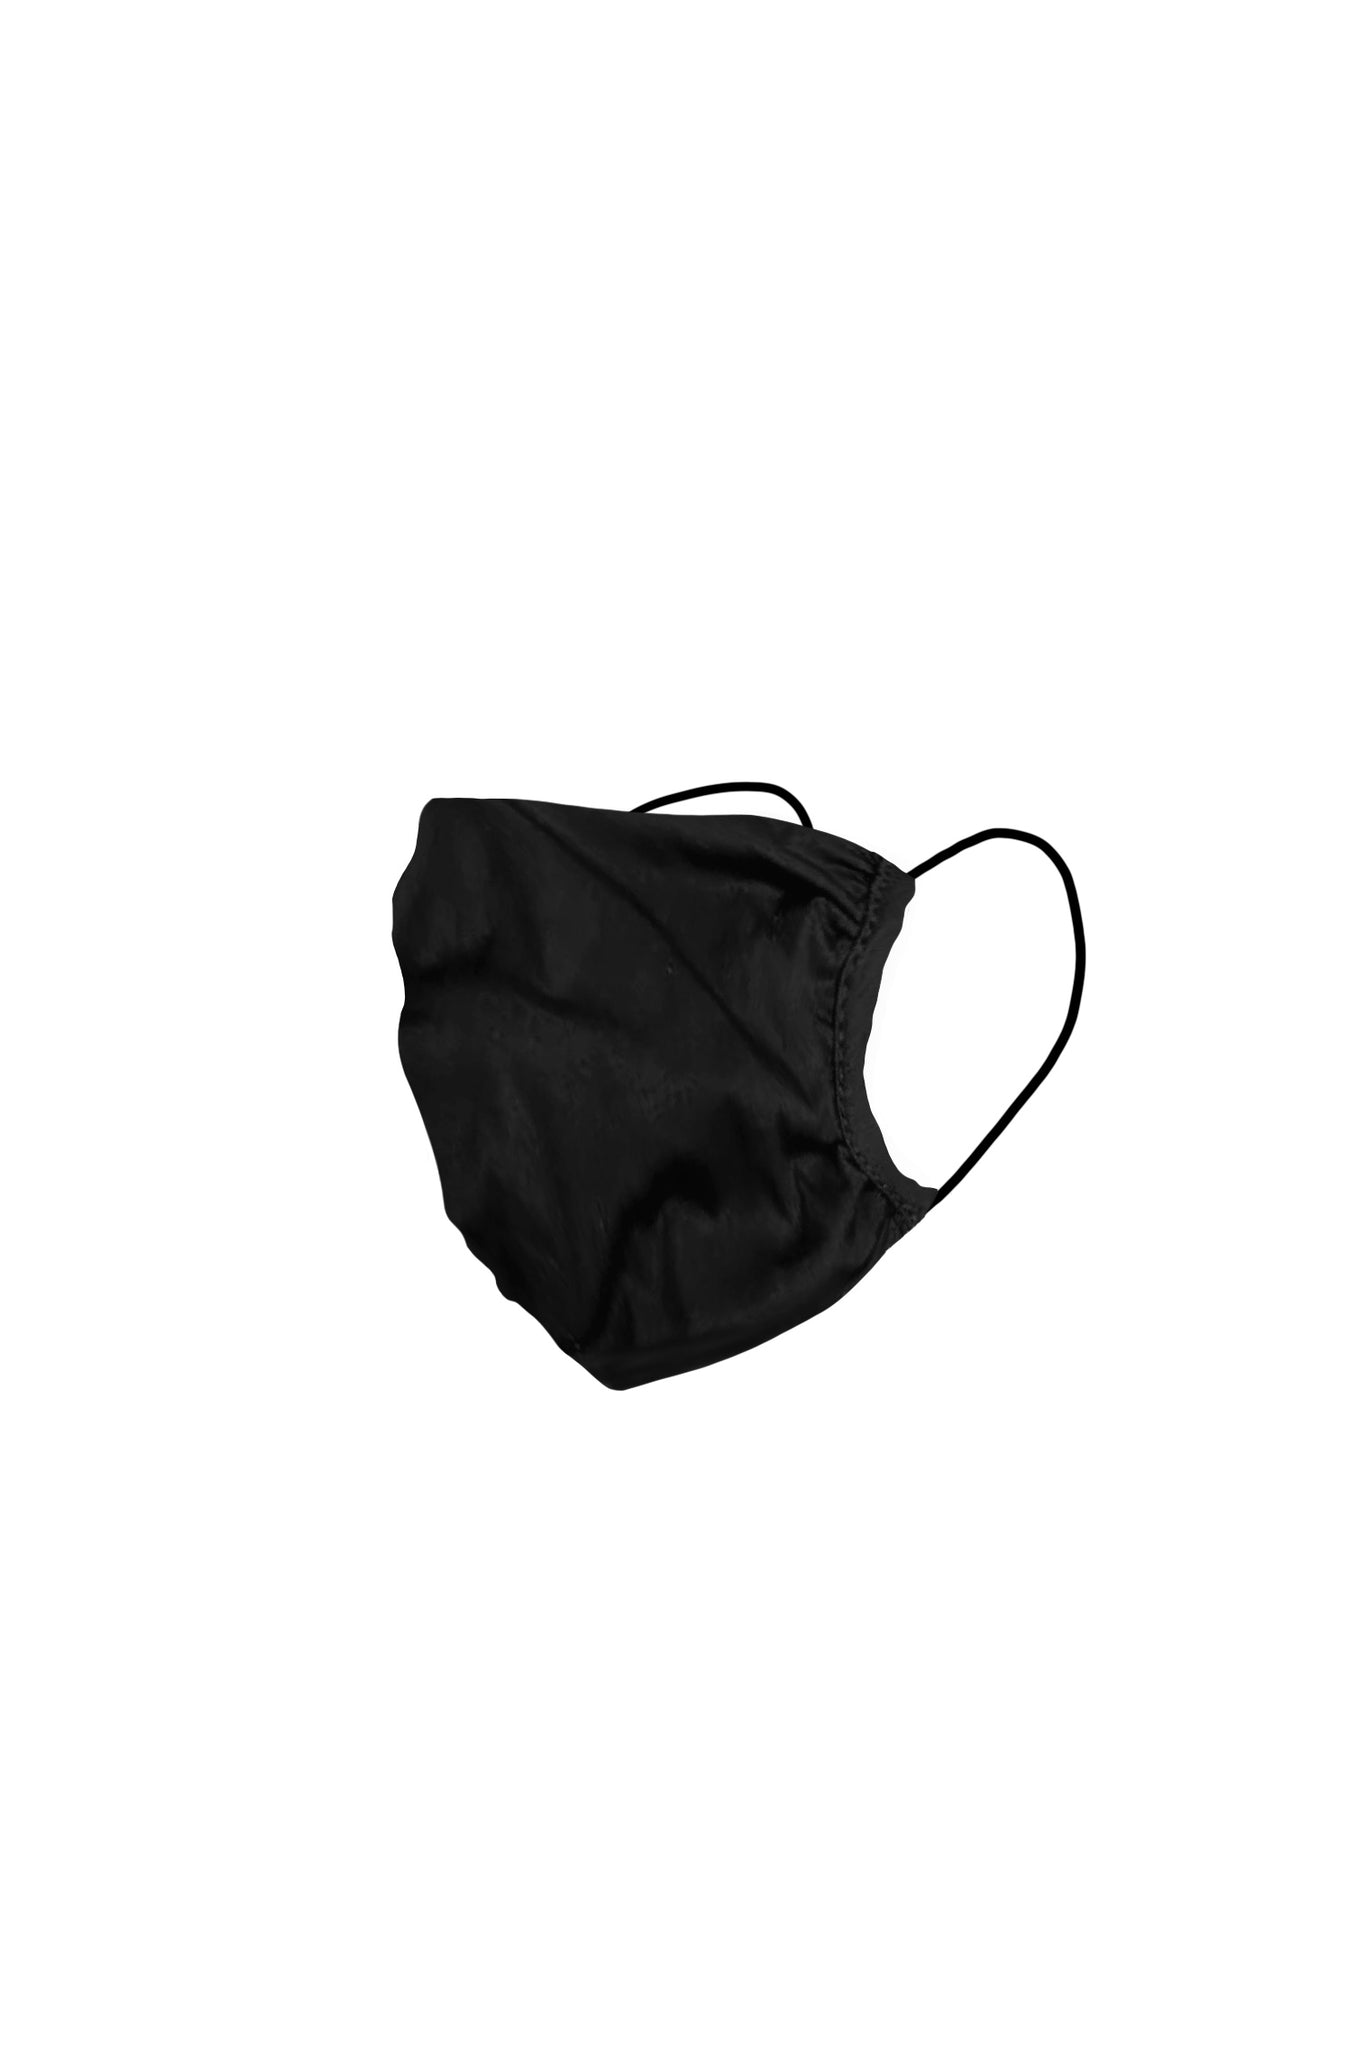 KES Peace Face Covering - Triple-Layer Black Cotton (2 in 1 Pack)